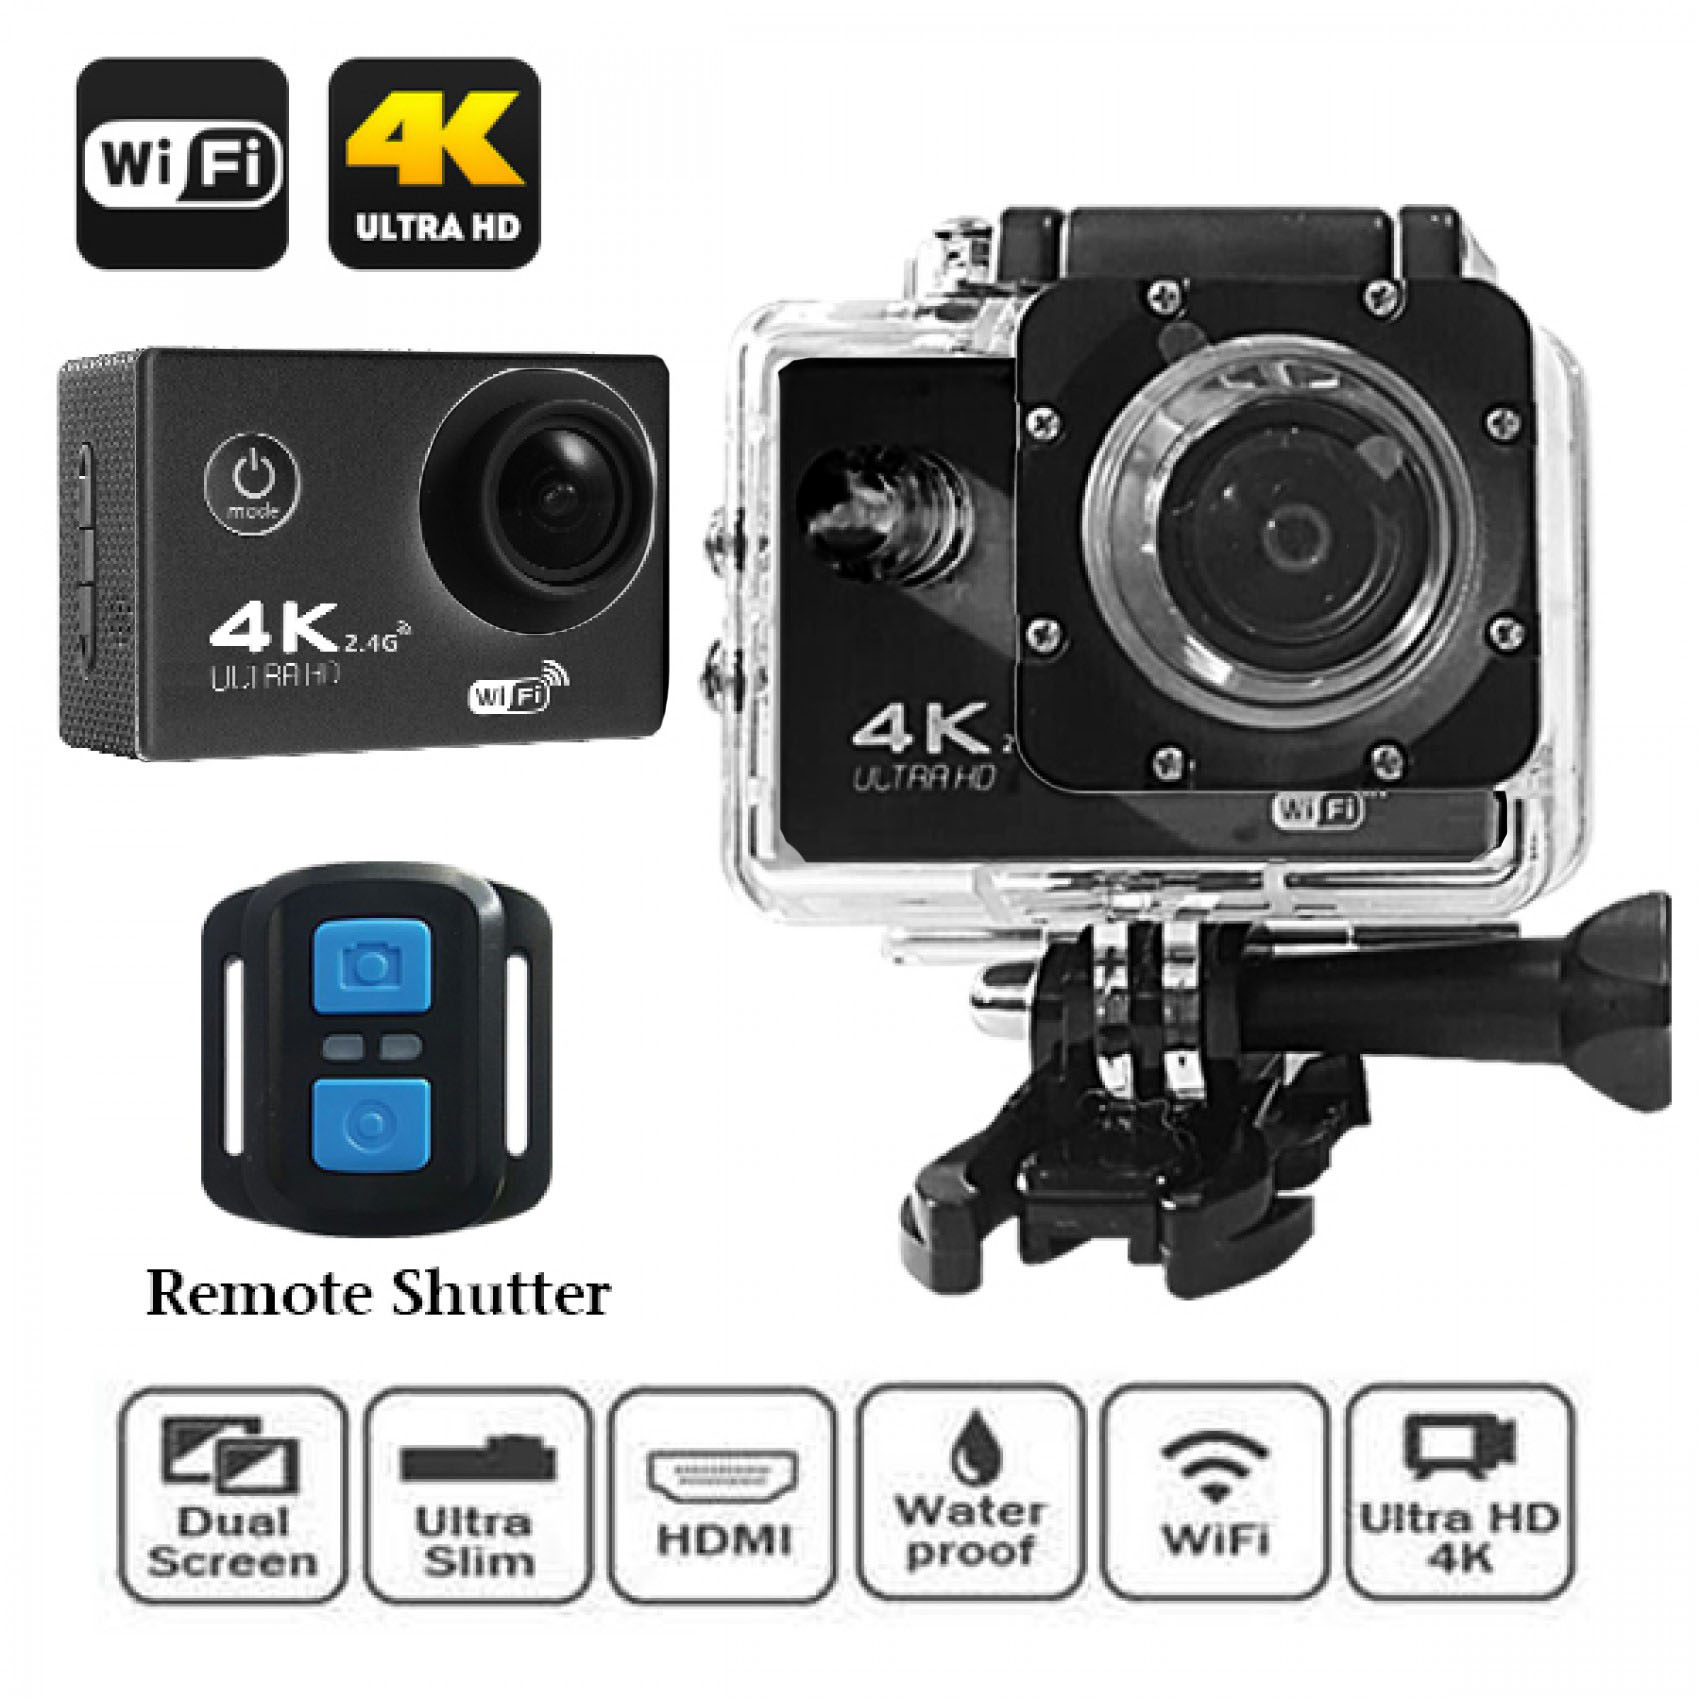 4K Ultra HD 16MP 2 Inch LCD Viewer Action Wifi Camera With Waterproof Remote Shutter - Black